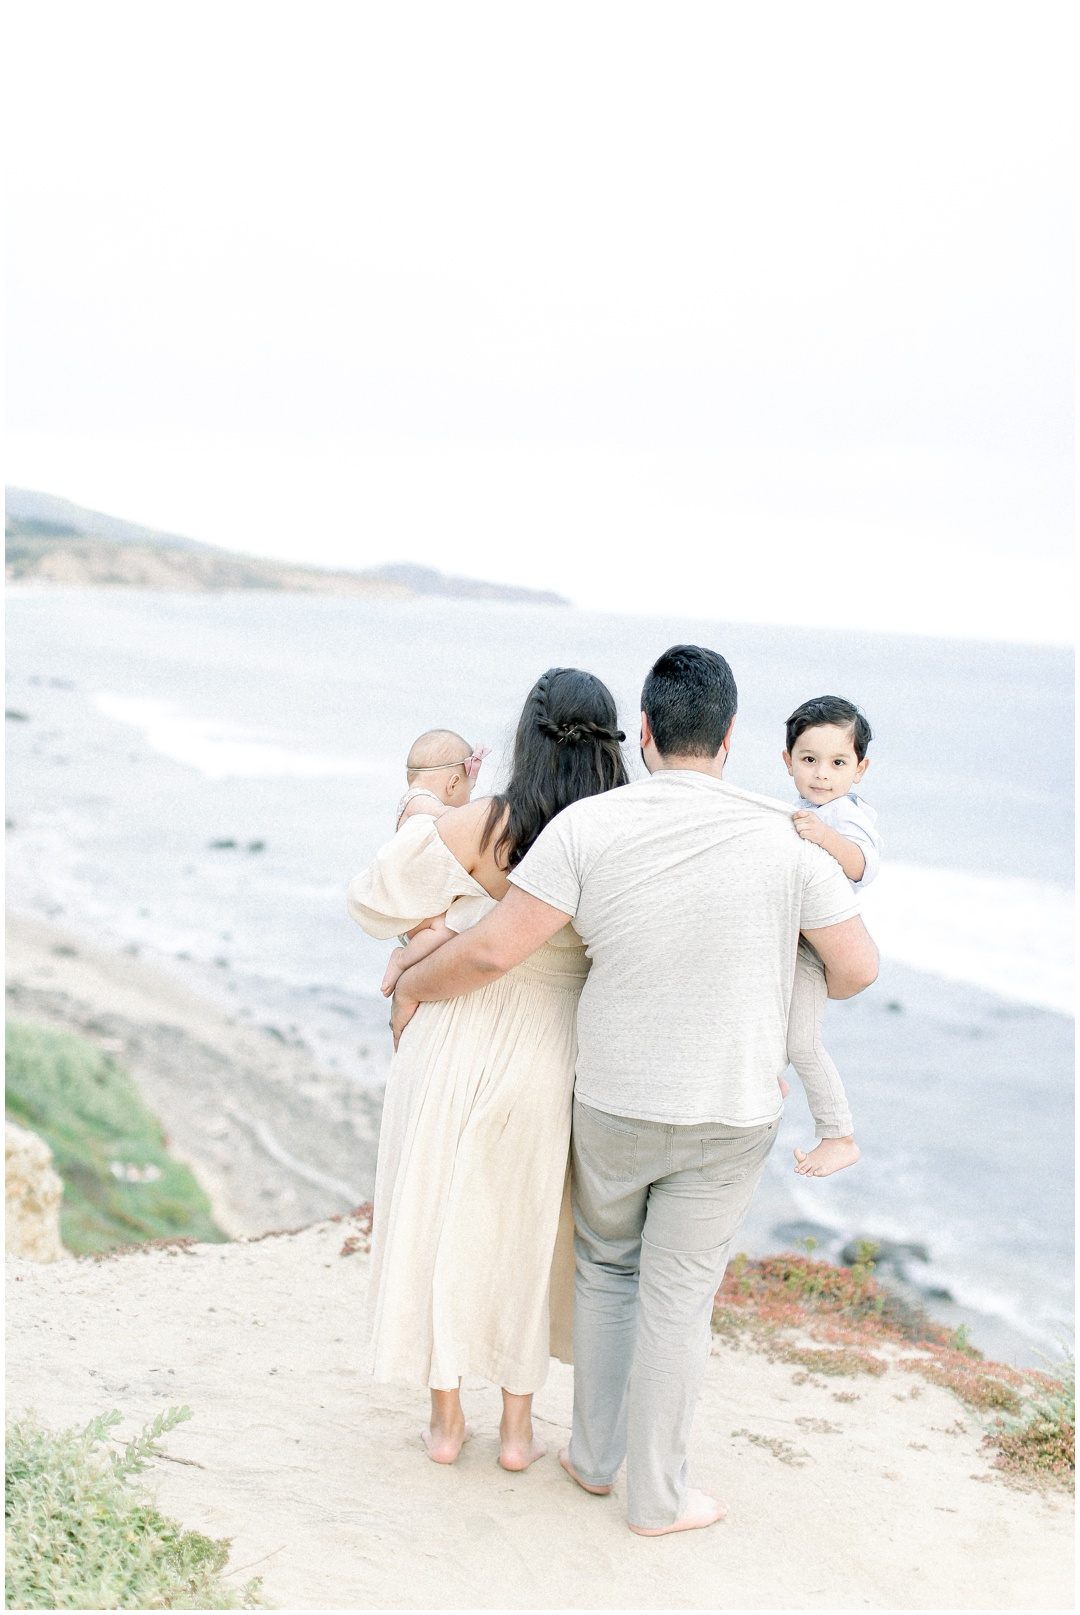 Newport_Beach_Newborn_Light_Airy_Natural_Photographer_Newport_Beach_Photographer_Orange_County_Family_Photographer_Cori_Kleckner_Photography_Huntington_Beach_Photographer_Family_OC_Newborn_Natalie_Nunez_Thomas_Nunez_Natalie_Roca_Rosh_Nunez_Family_3560.jpg